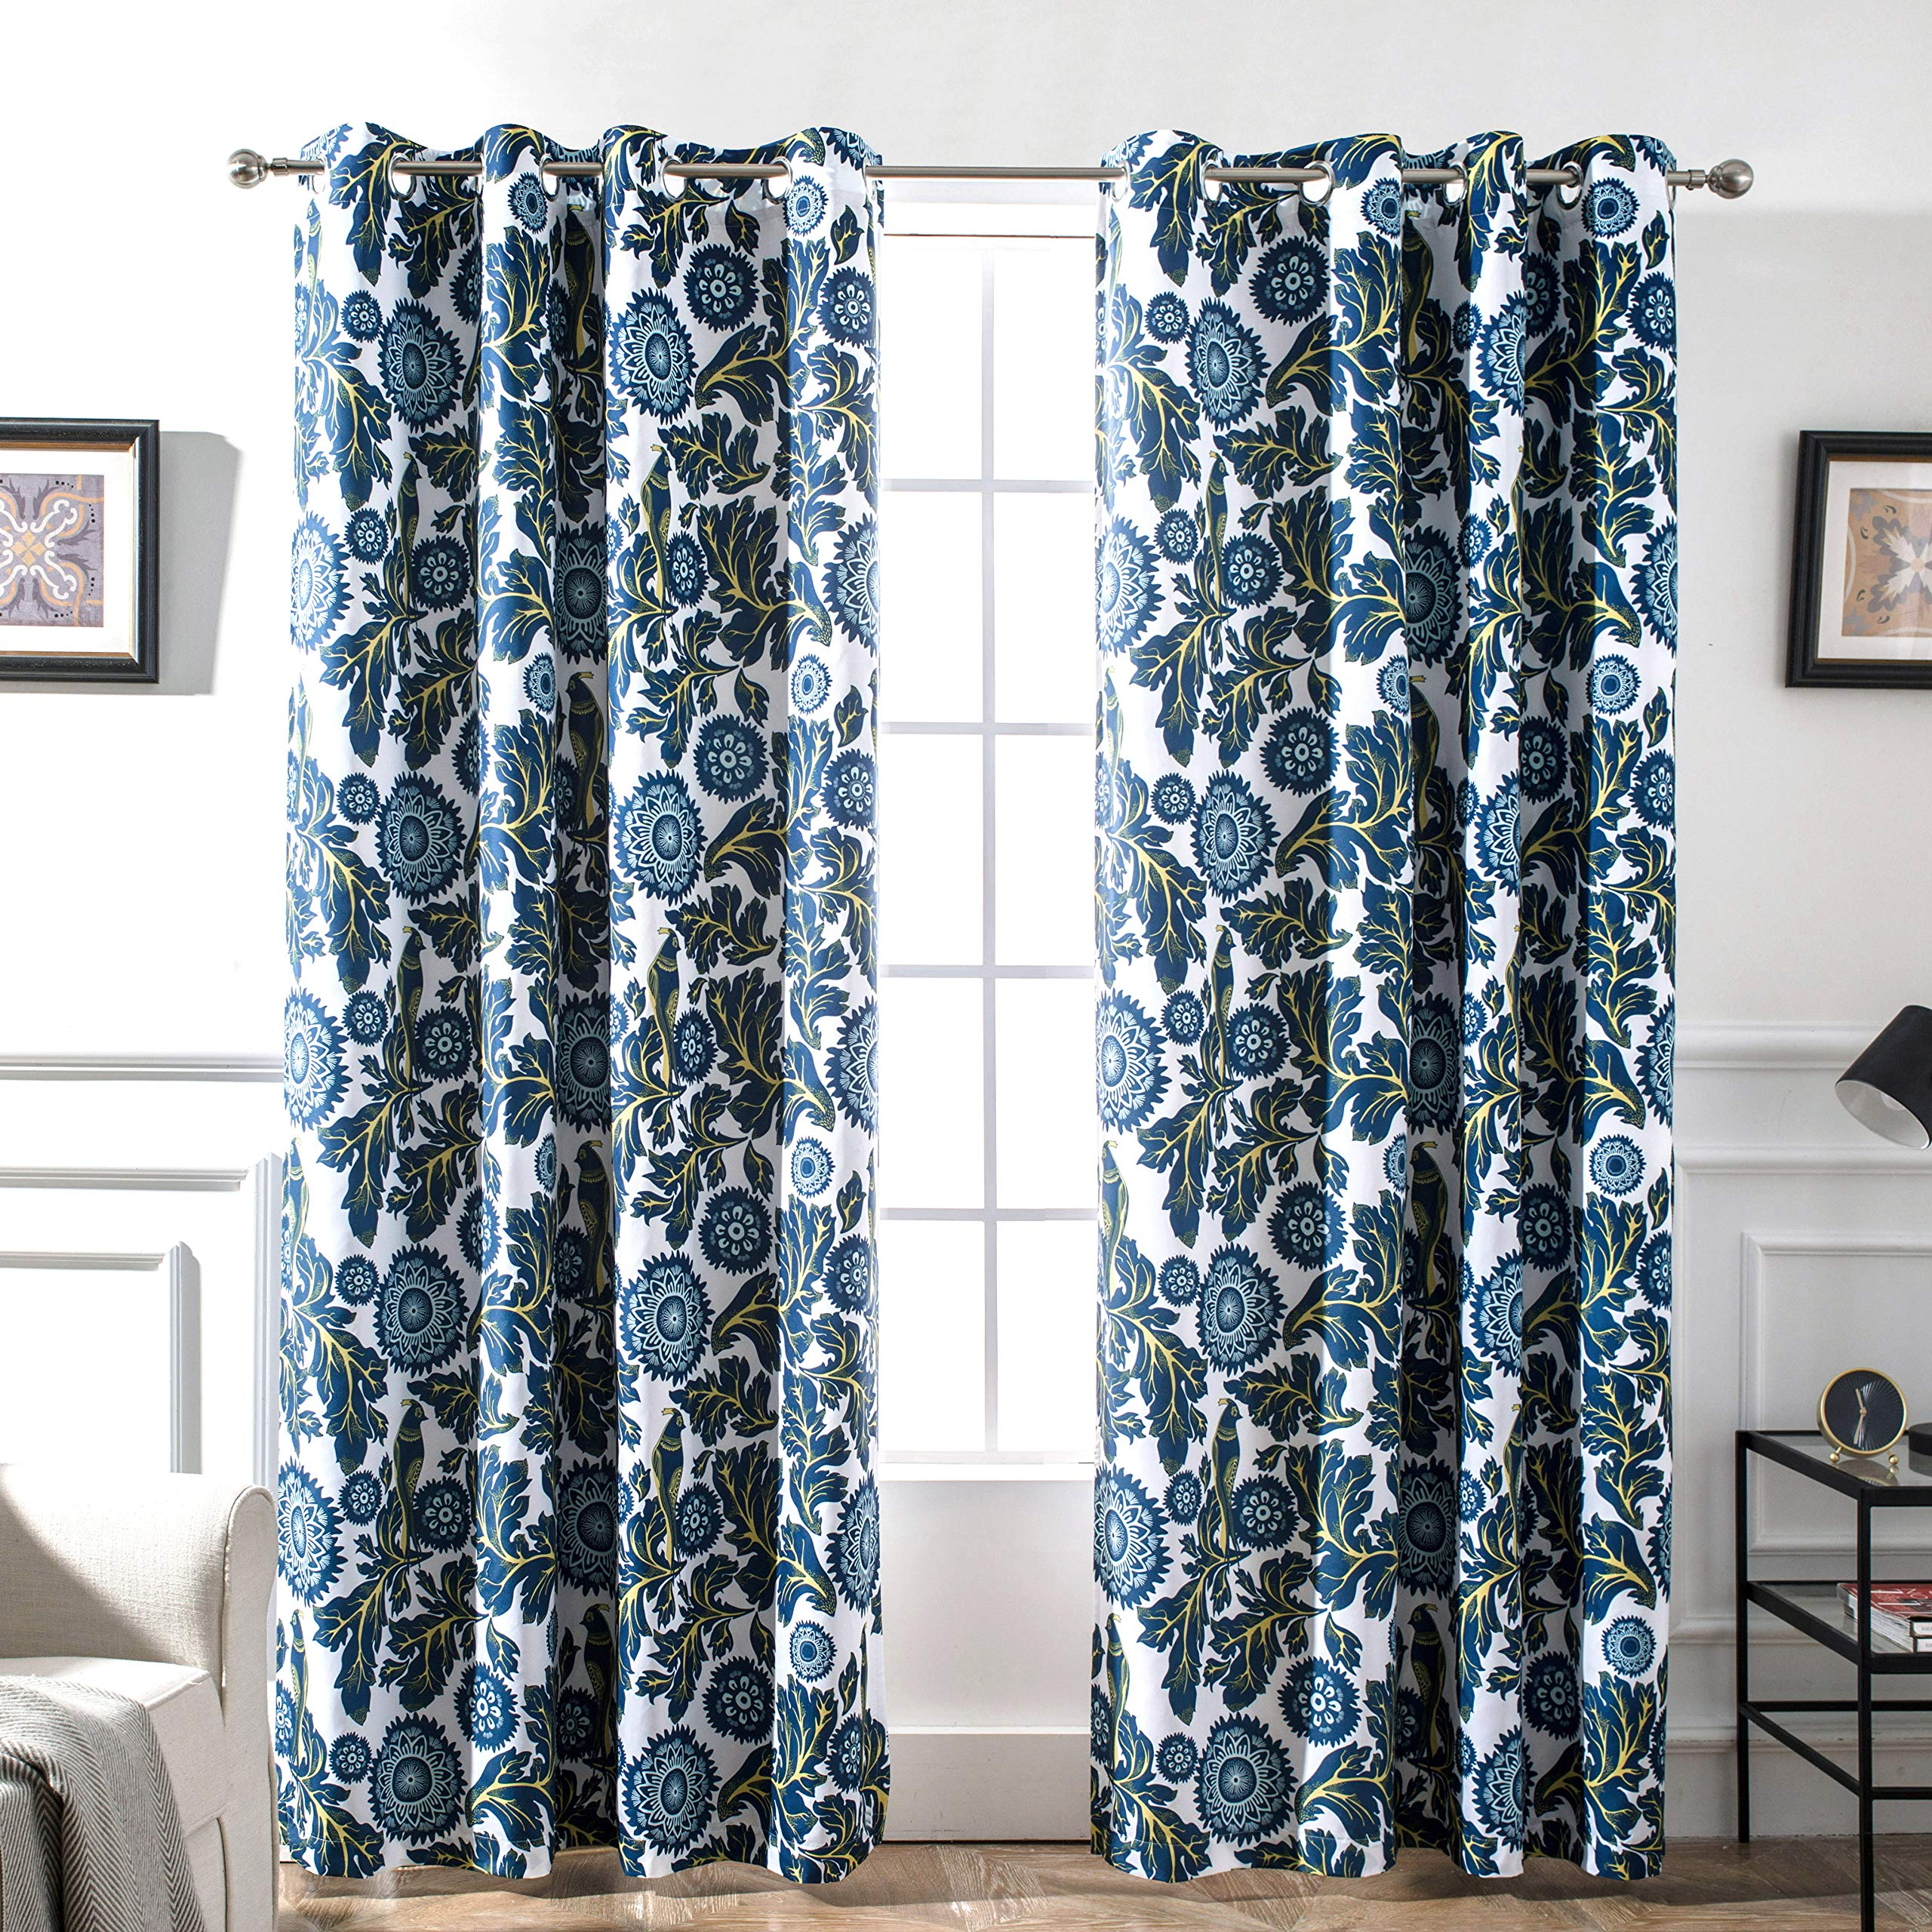 DriftAway Bird Tree Floral Flower Leaf Lined Thermal Insulated Blackout Room Darkening Grommet Energy Saving Window Curtains 2 Layer Set of 2 Panels Each 52 Inch by 84 Inch Navy by DriftAway